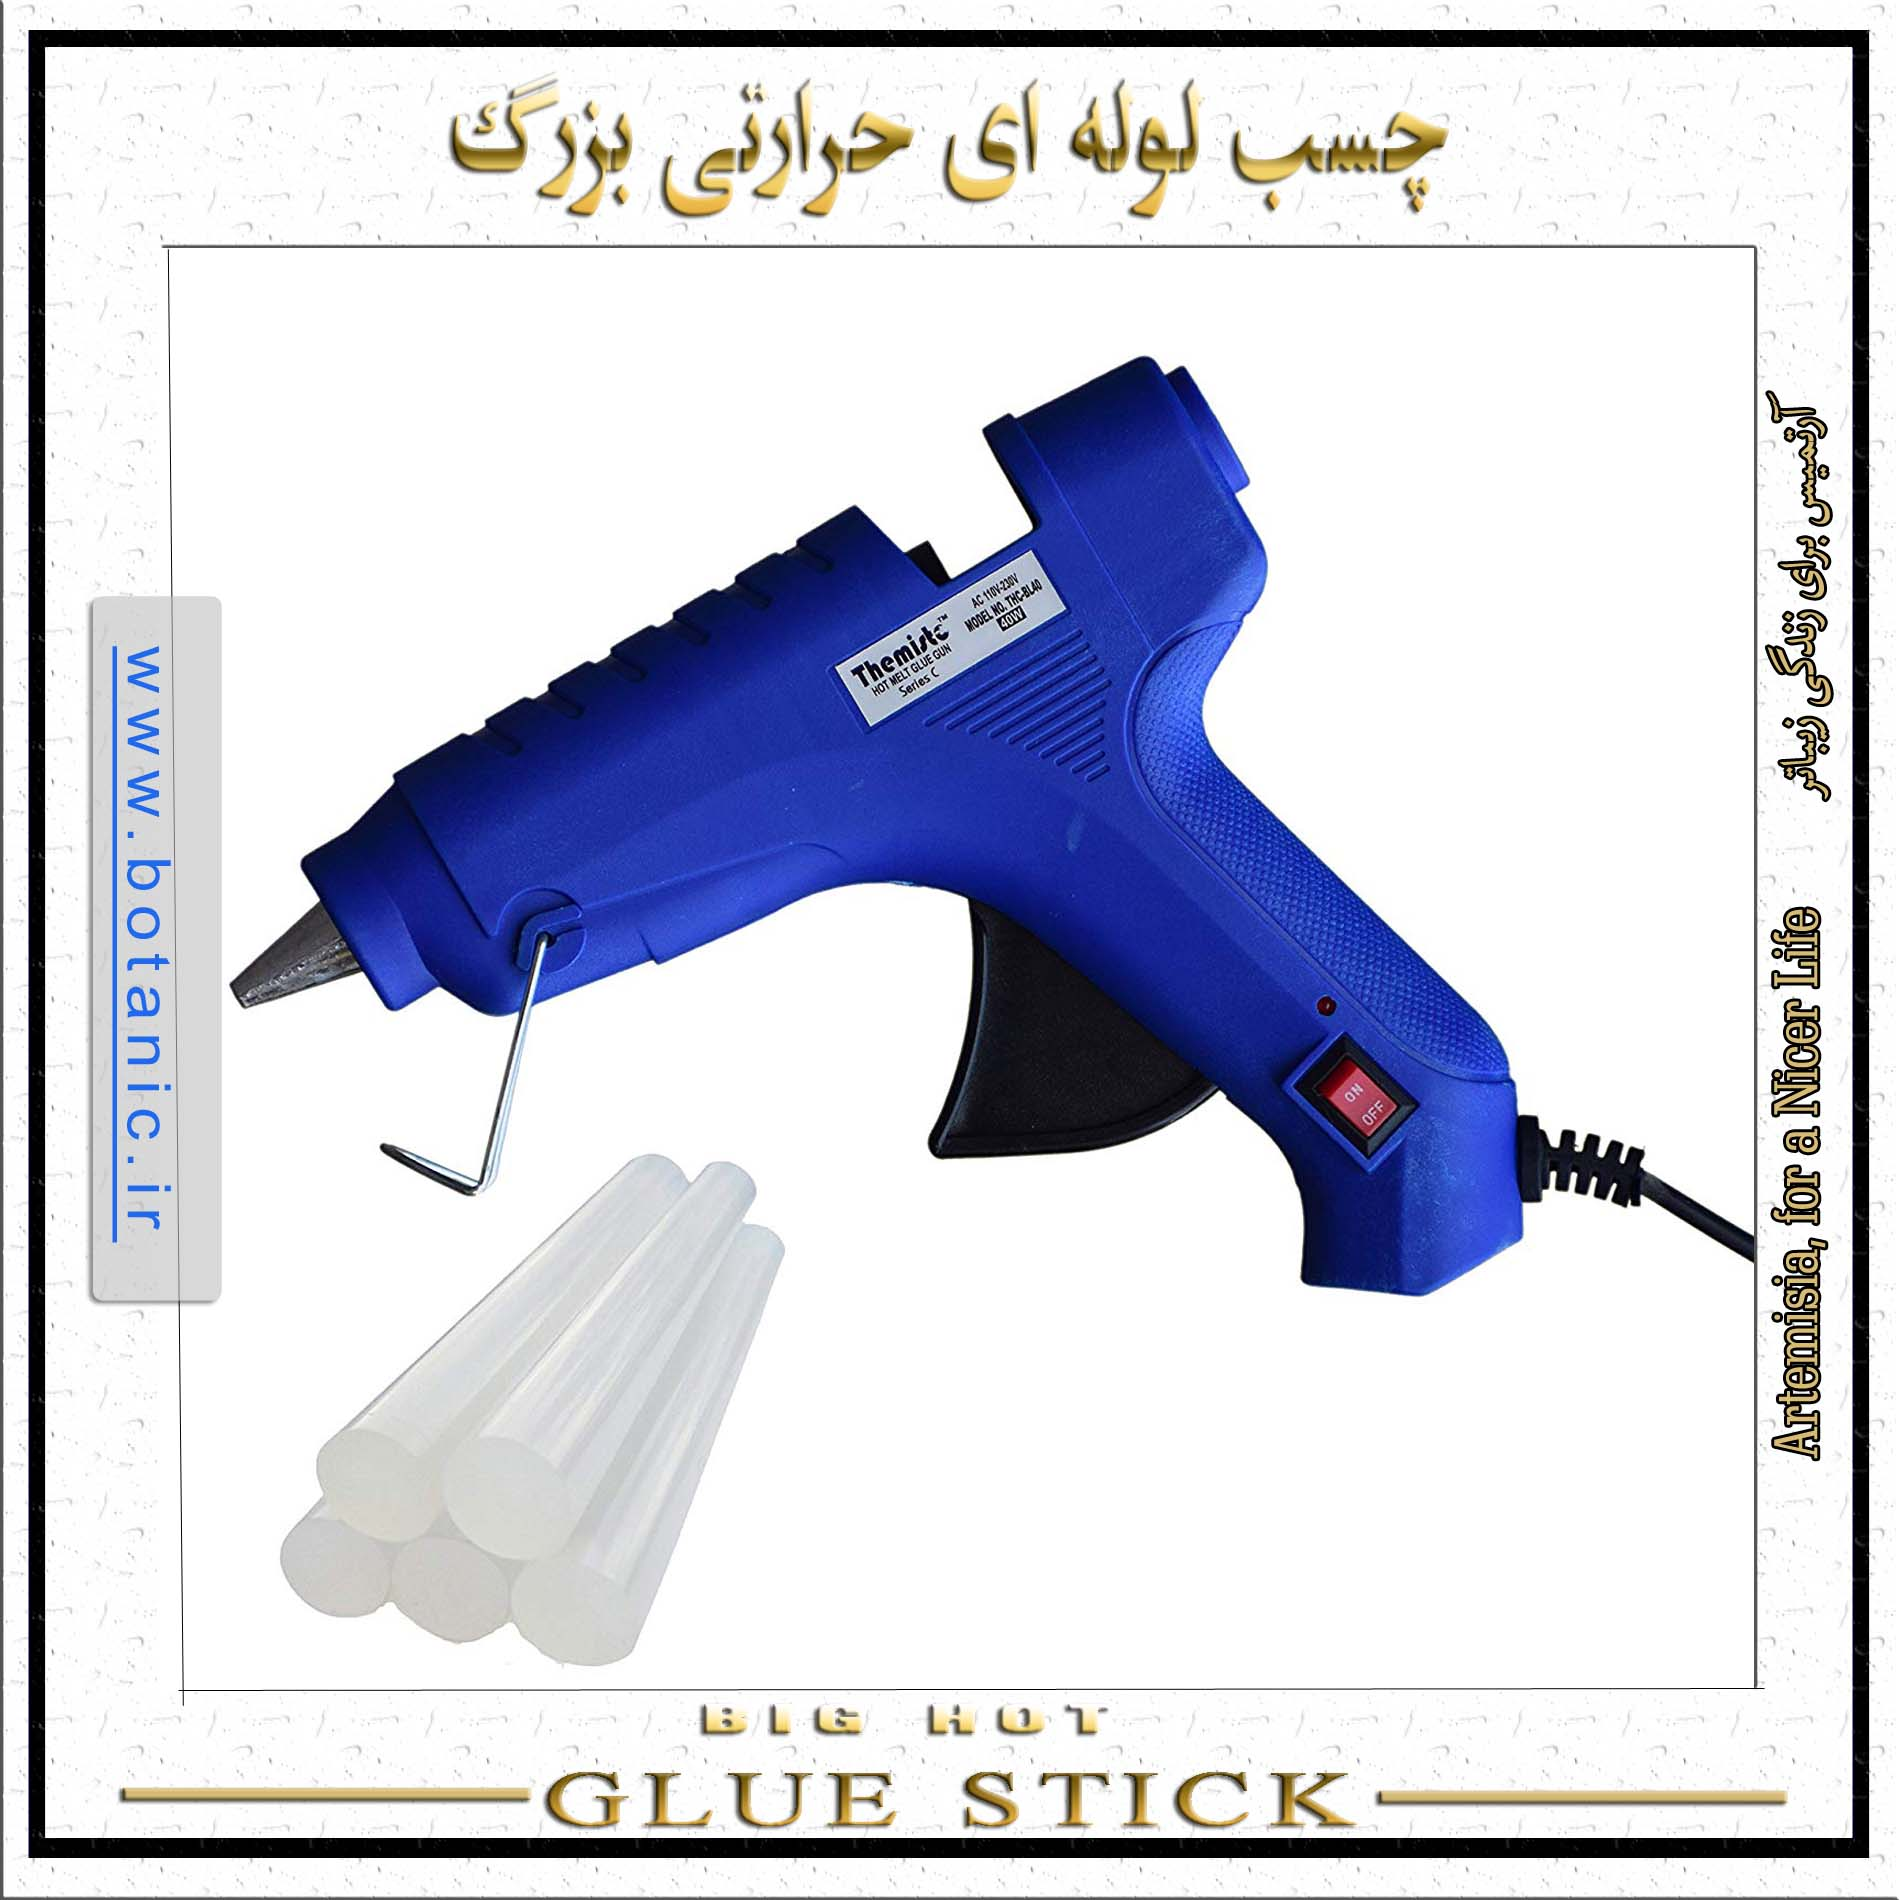 Big Hot Glue Stick